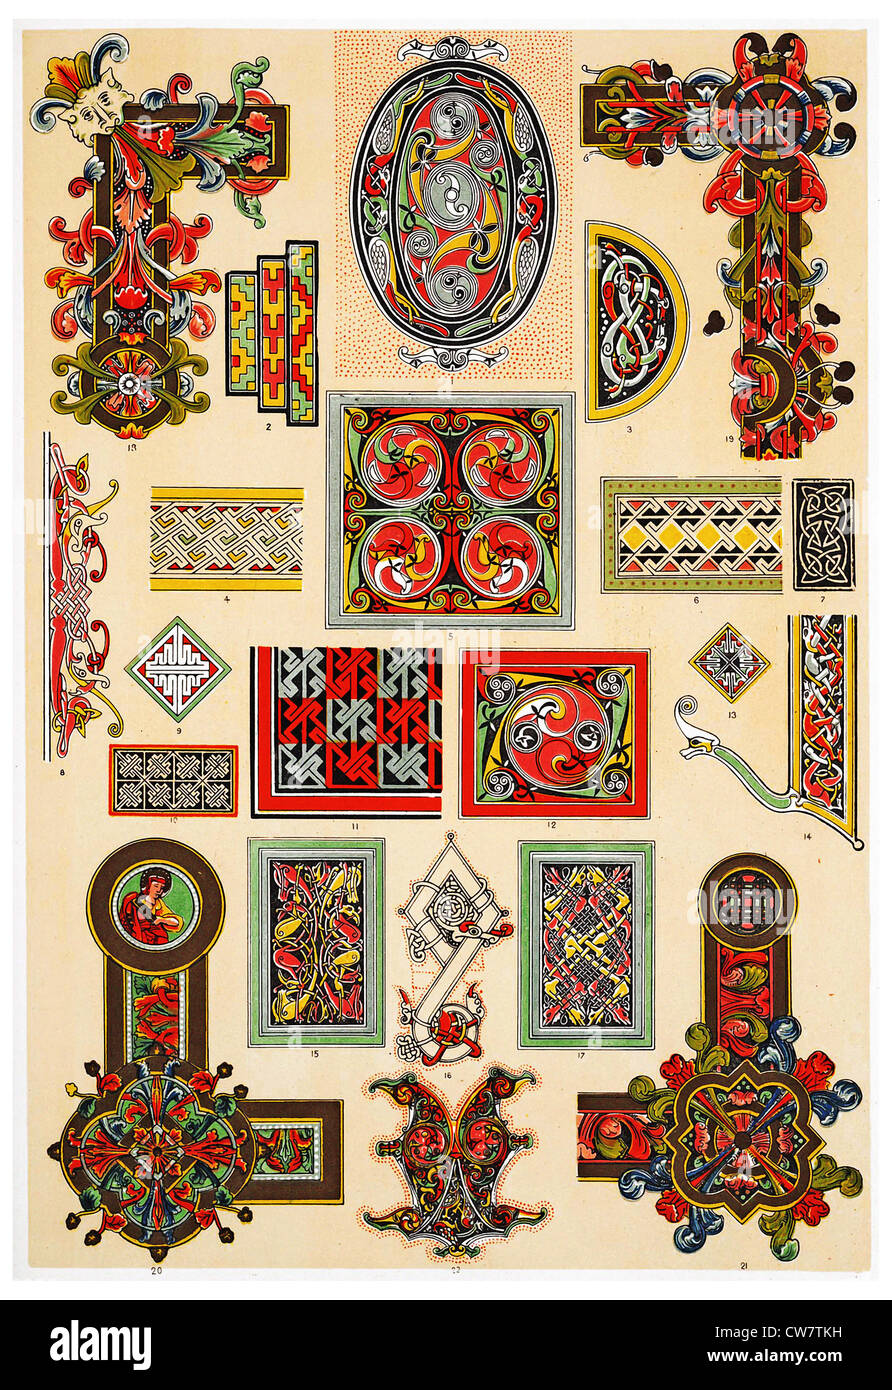 CELTIC ORNAMENTS - Stock Image